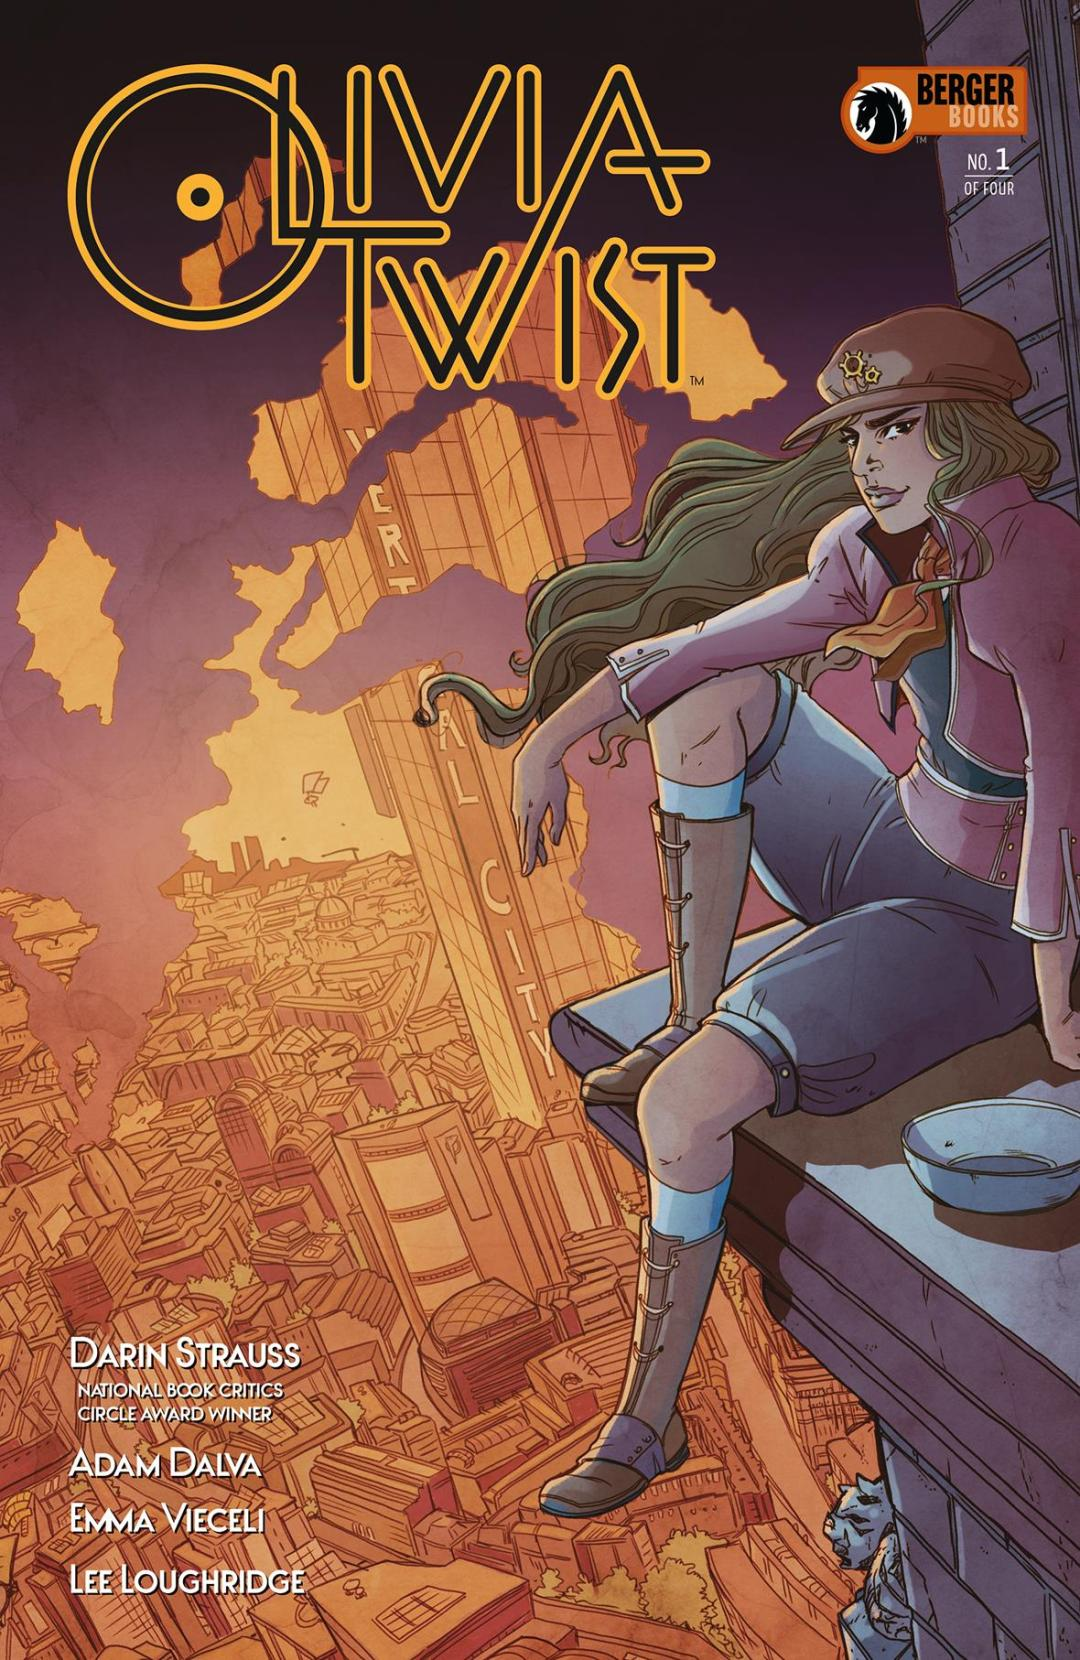 Berger Books to Publish a Dystopian Spin on the Dickens' Classic in 'Olivia Twist'